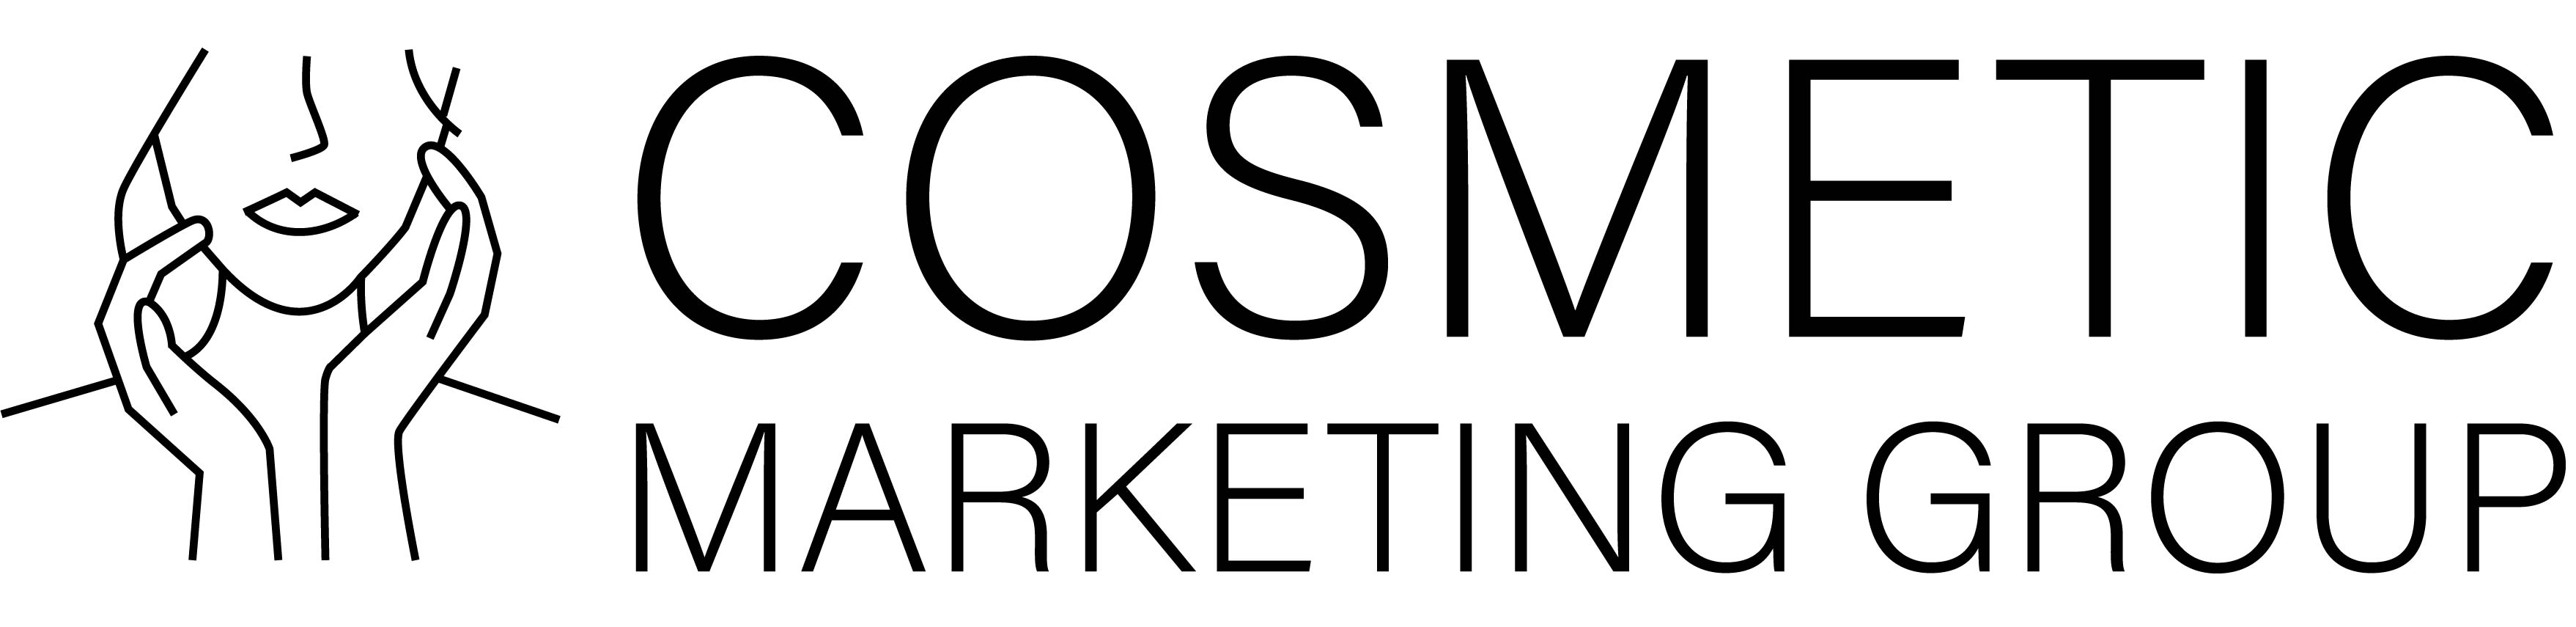 Cosmetic Marketing Group